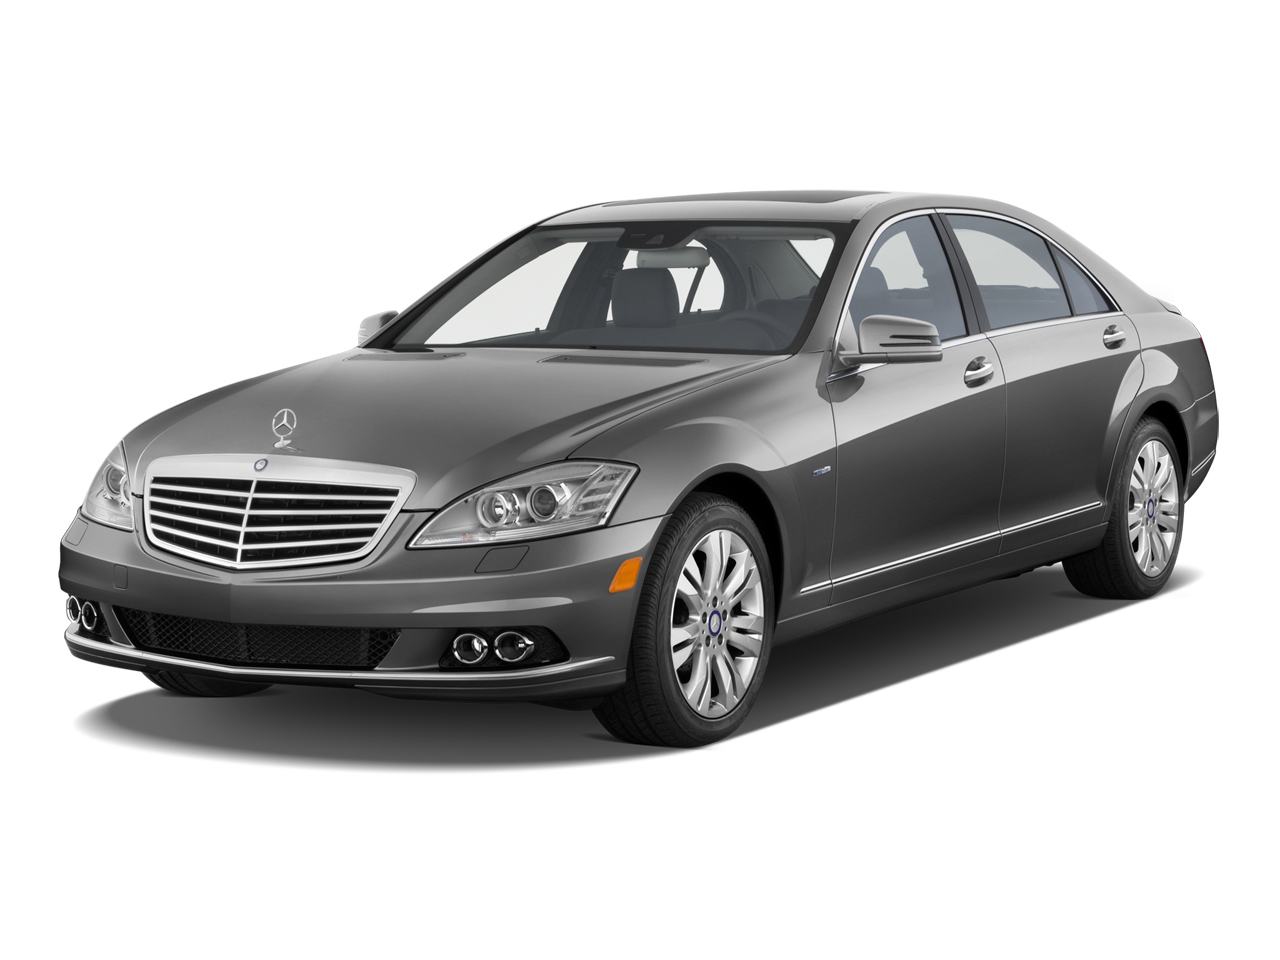 2012 mercedes benz s class review ratings specs prices for Mercedes benz s550 price 2012